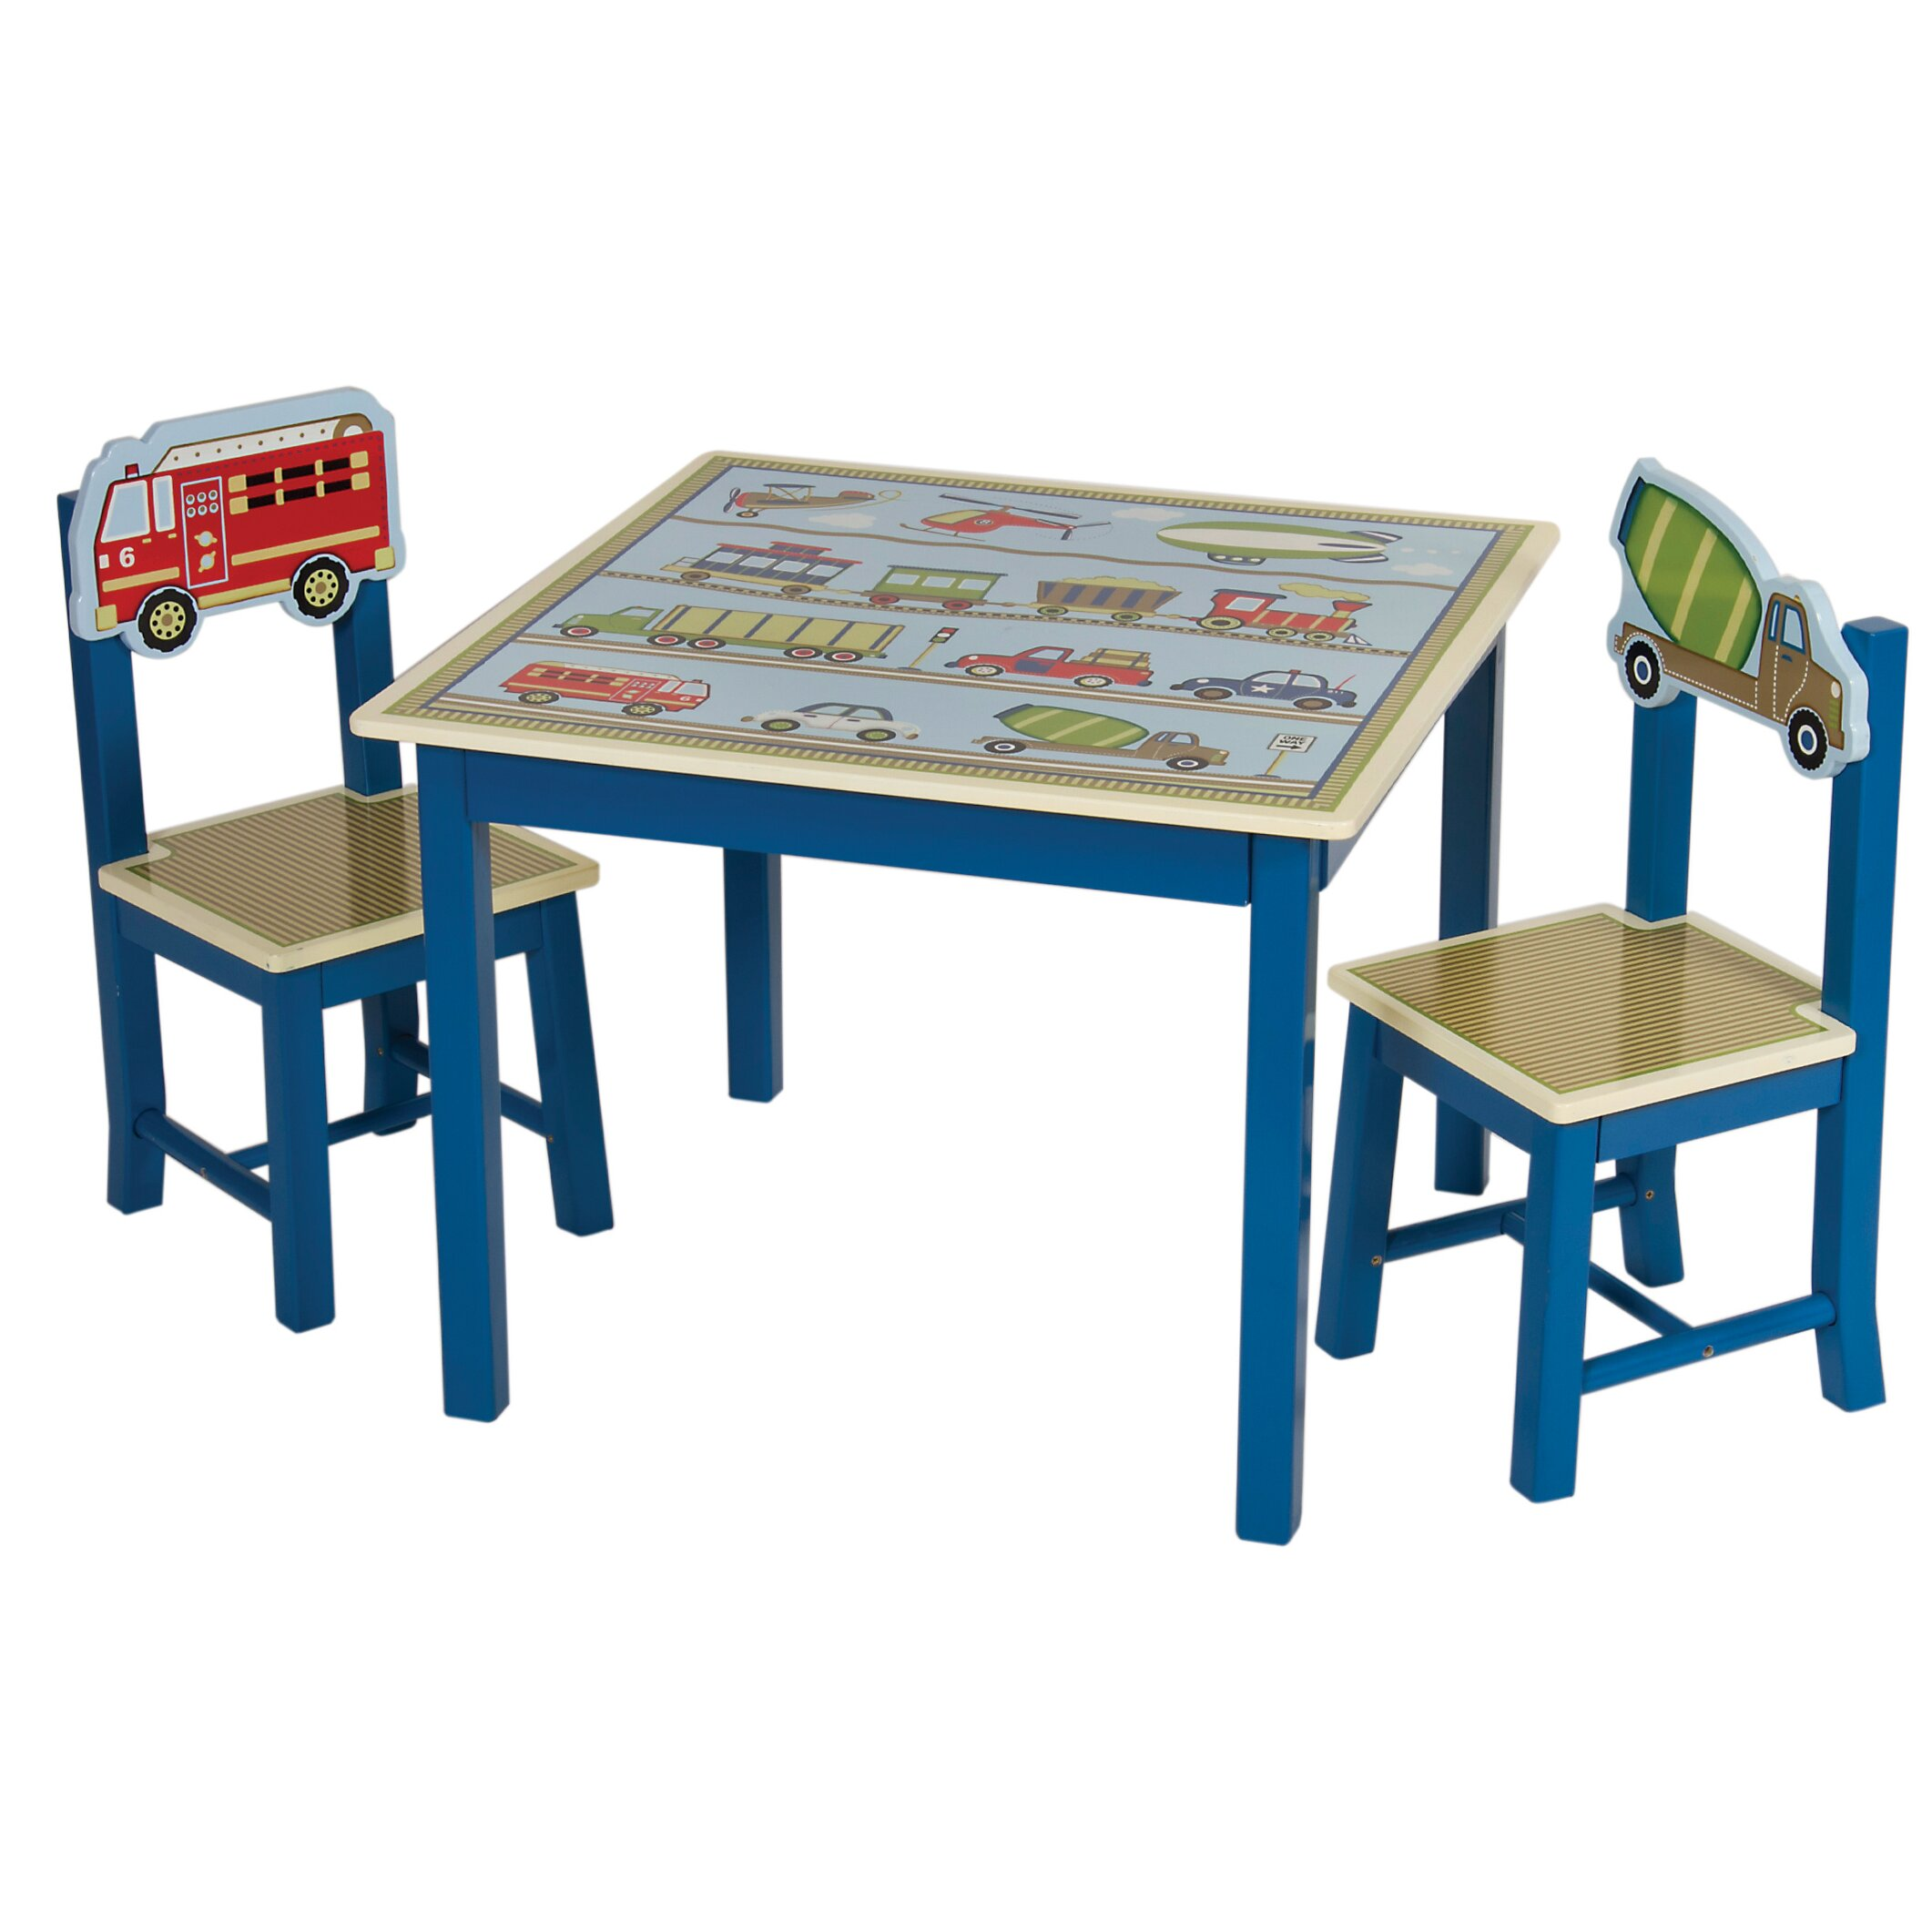 Table Set For Kids Guidecraft Moving All Around Kids 3 Piece Table And Chair Set